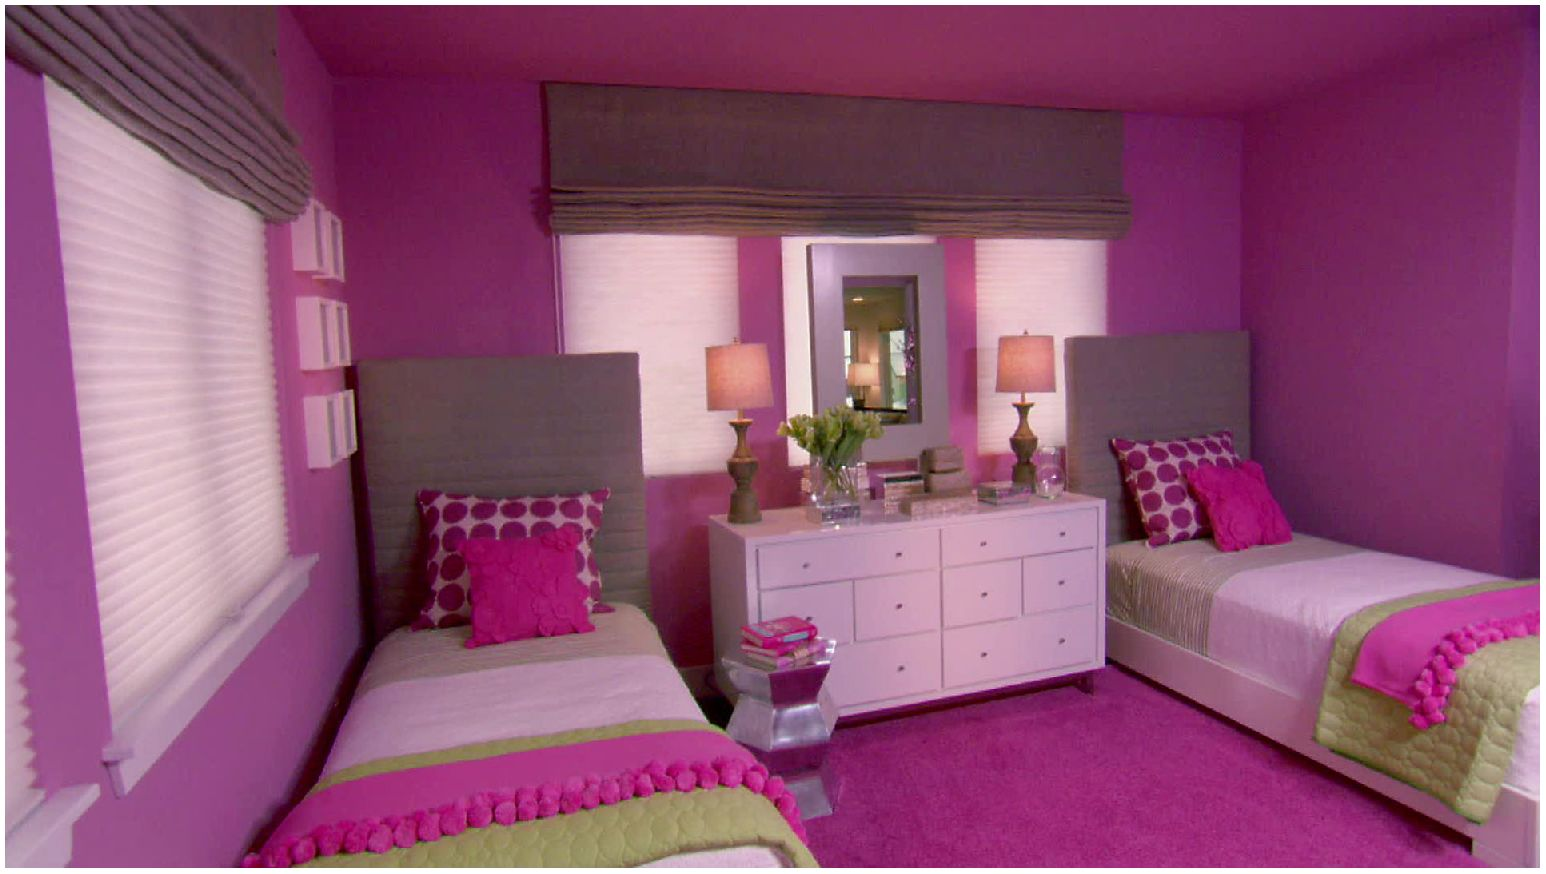 Endearing Pink And Purple Paint Ideas Of Amazing Girls Bedroom Color Schemes Pictures Options Acnn Decor